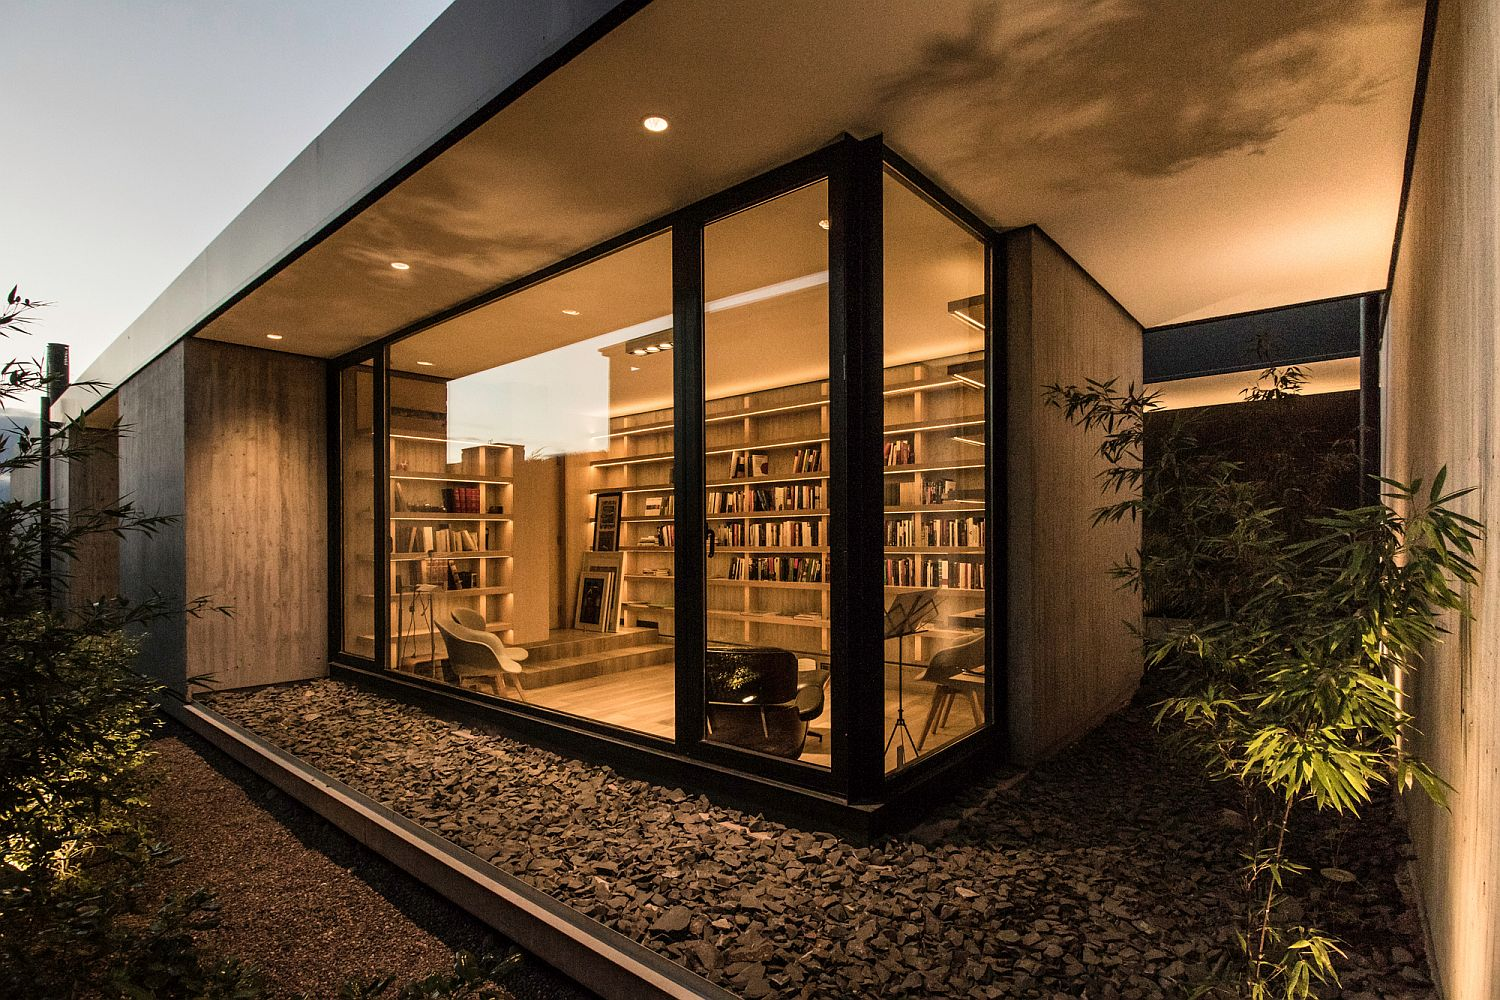 Reading room in the corner and home office opens up towards the outdoors